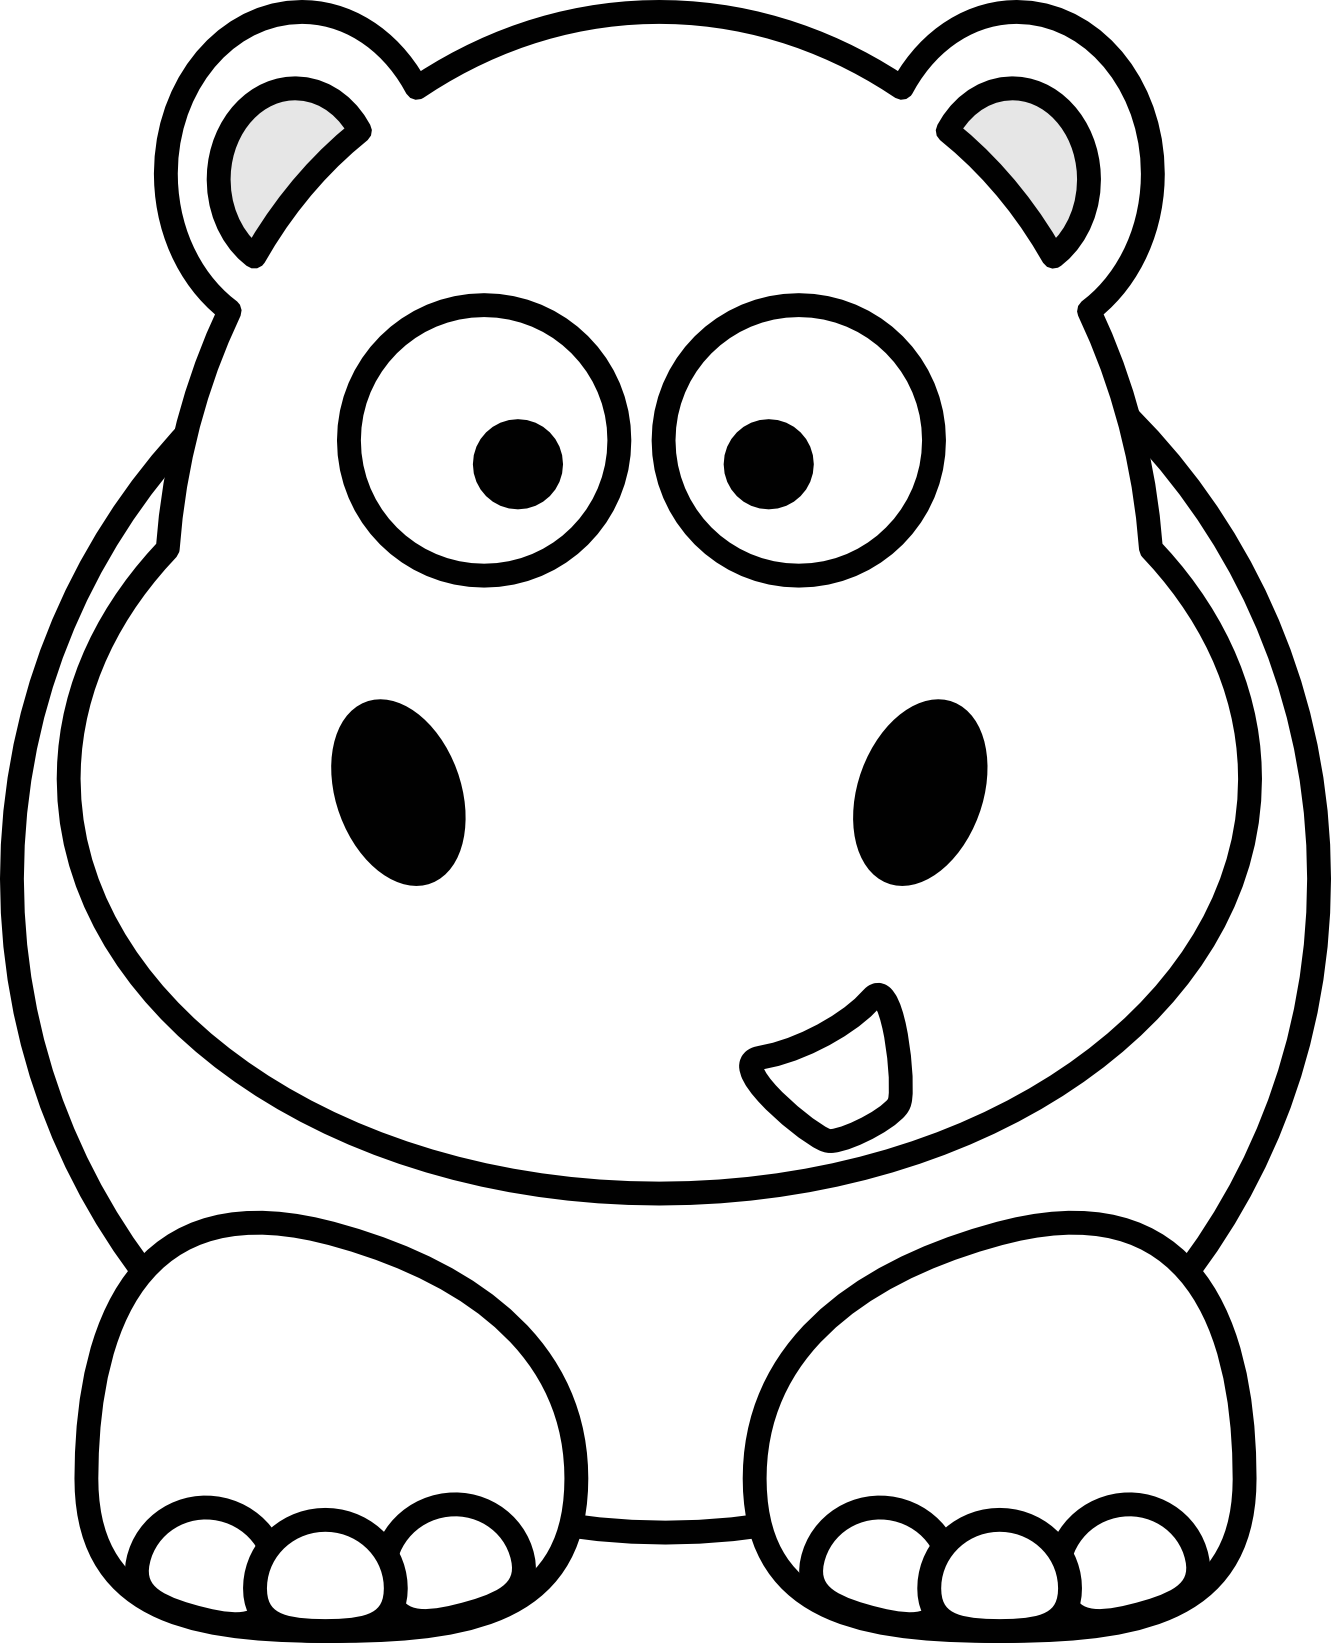 Animal book clipart image black and white download Animal Clipart Black And White | Clipart Panda - Free Clipart Images image black and white download